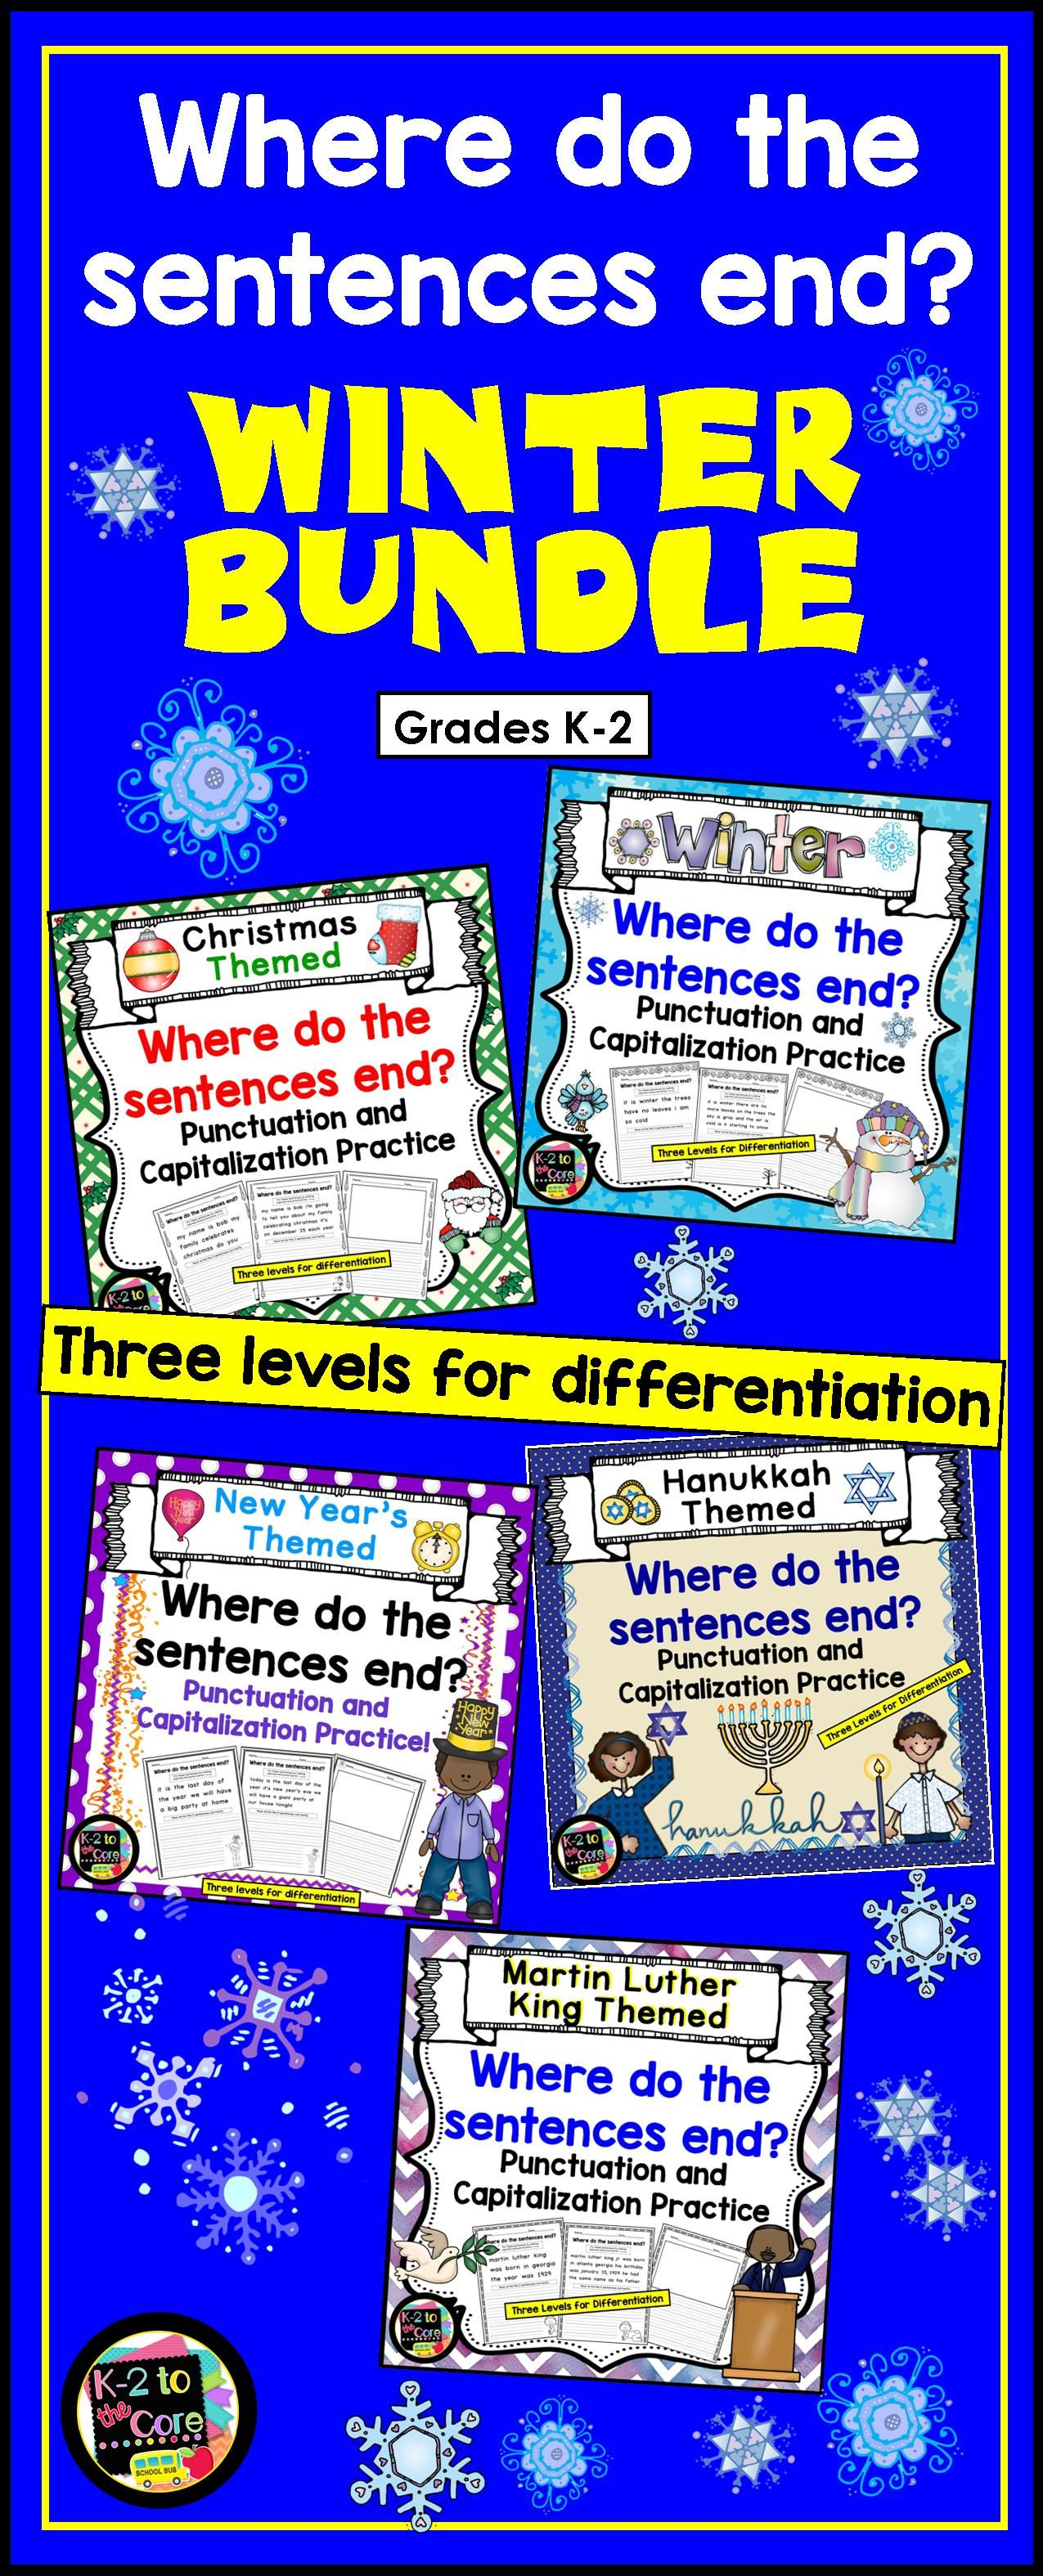 """This NO PREP Punctuation and Capitalization BUNDLE contains lots of engaging, differentiated, seasonal practice for your students. Included, are my five winter-themed """"Where do the sentences end?"""" products: Winter, Christmas, Hanukkah, New Years, and Martin Luther King. You'll be giving your boys and girls sentences with no punctuation or capitals. Their job is to figure out where the sentences end, edit the sentences, and then rewrite them with correct capitalization and punctuation. Grades…"""